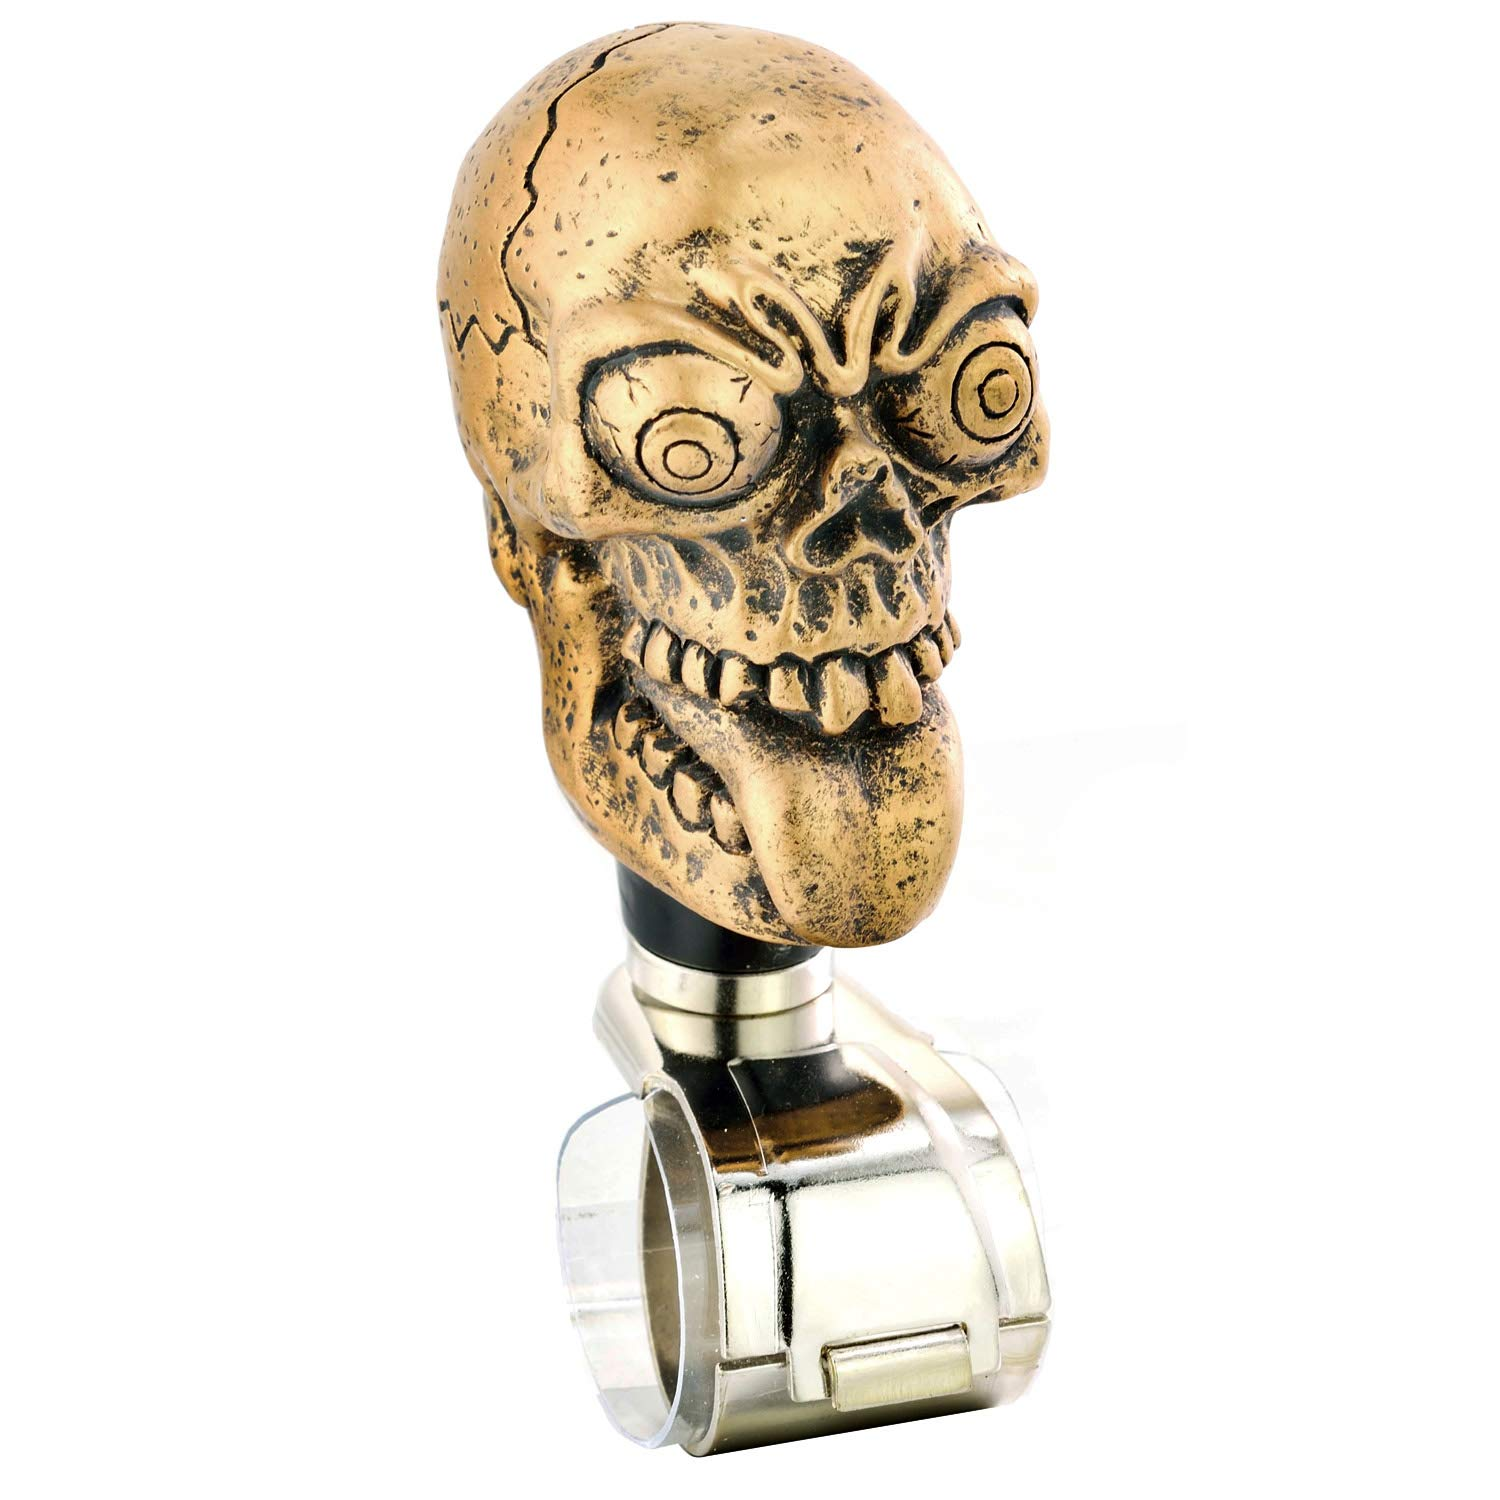 Bronze Lunsom Skull Shape Steering Suicide Spinner Big Eyes Resin Car Driving Wheel Knob Aid Turning Handle Control Grip Booster Fit Universal Vehicle